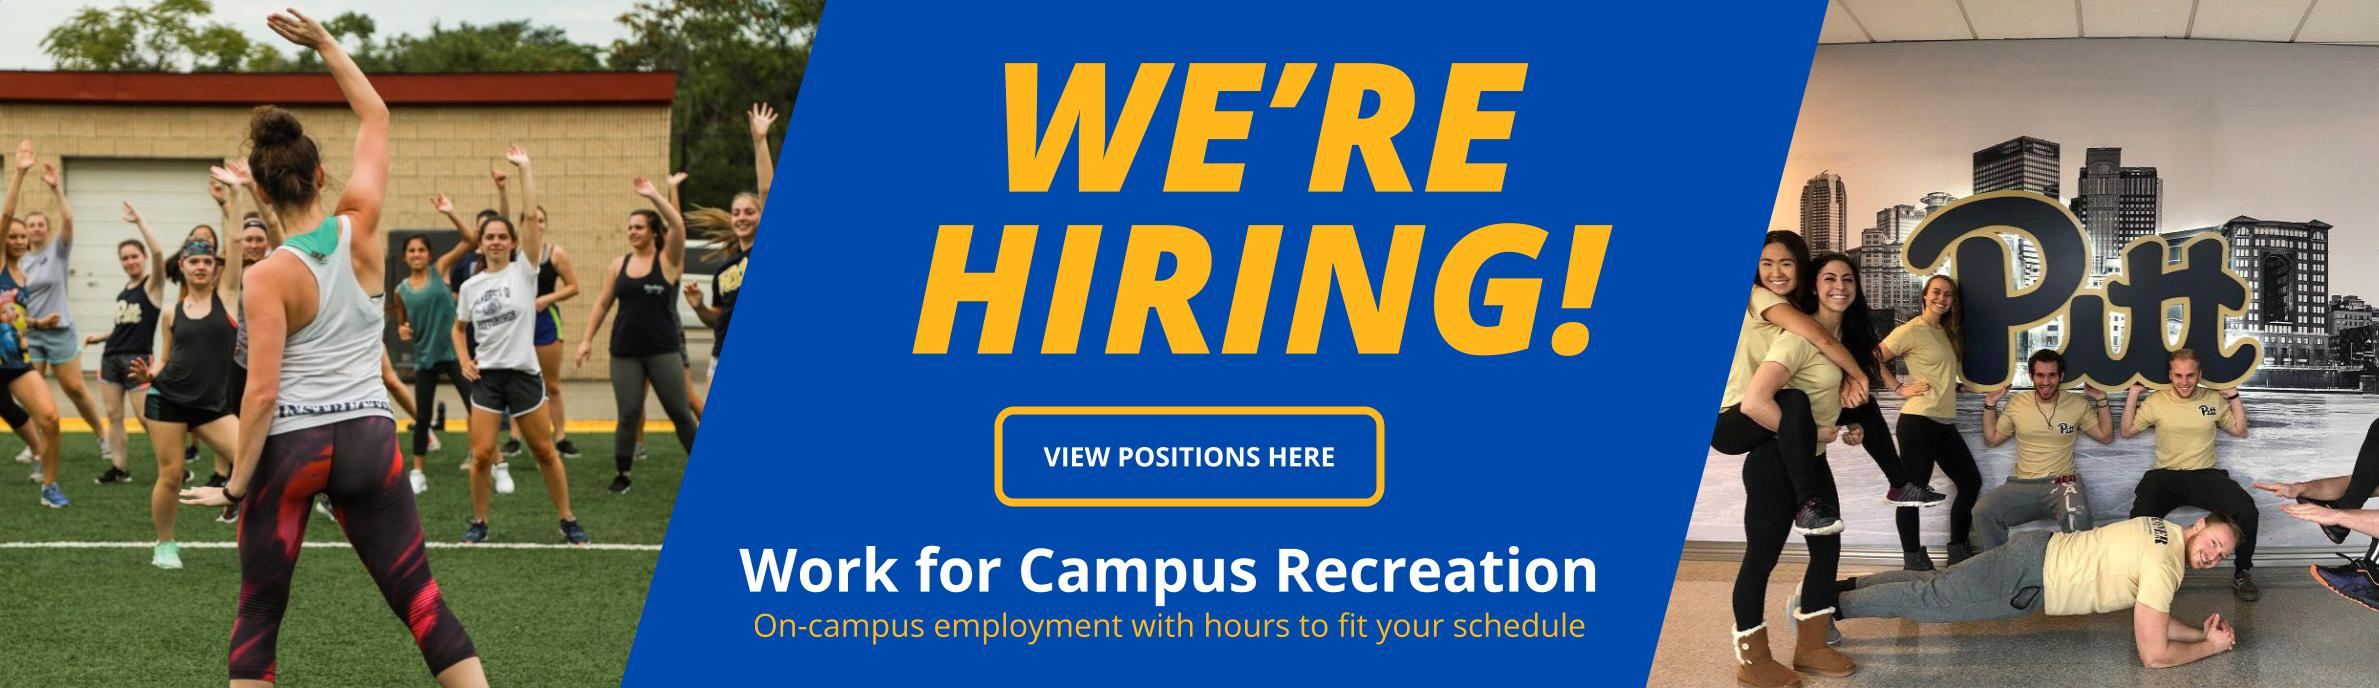 Work-for-Campus-Recreation-Web-Banner